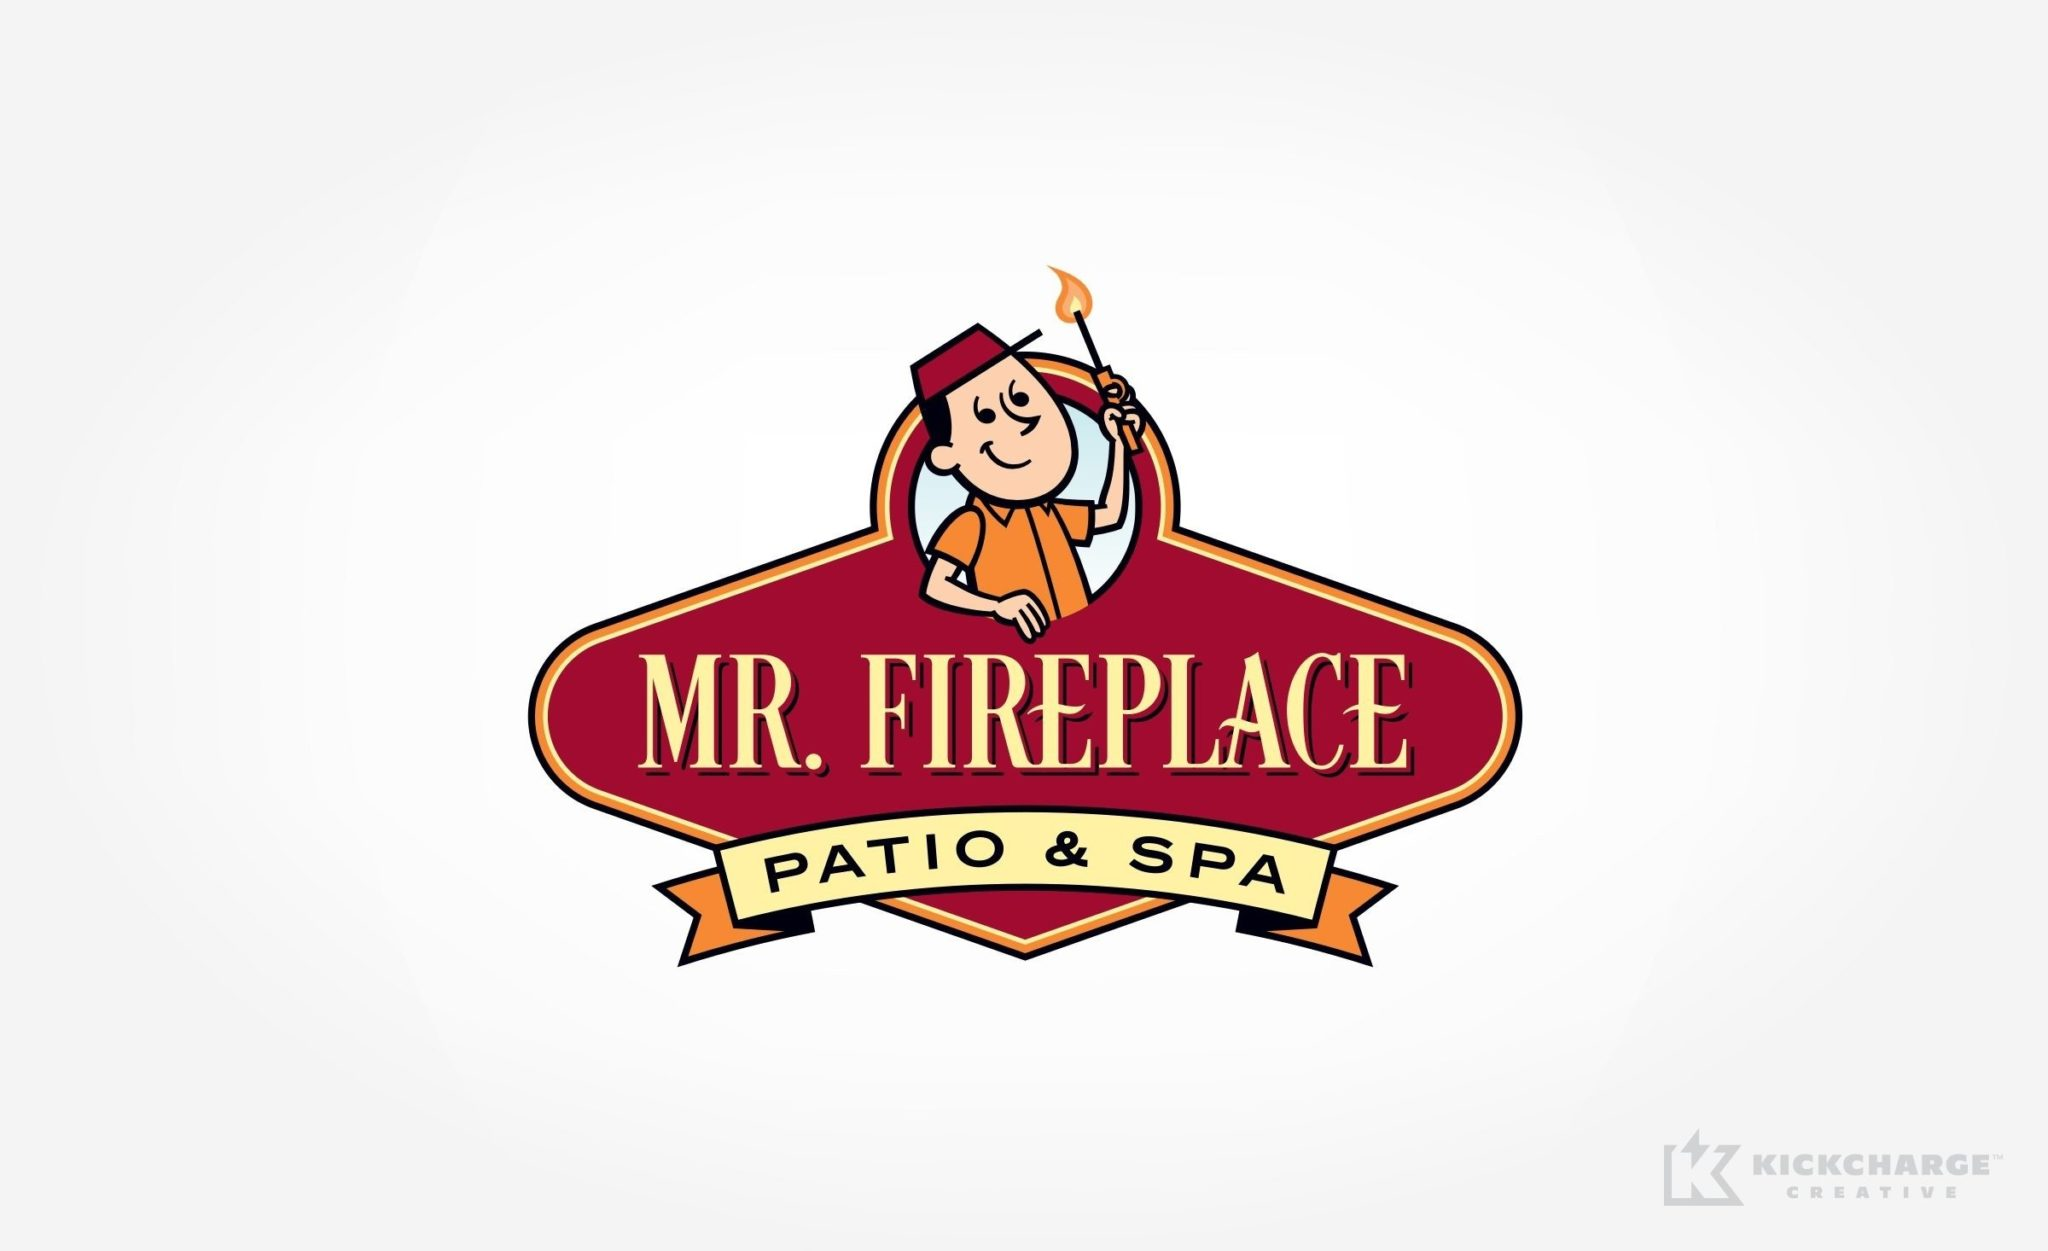 Logo design for Mr. Fireplace Patio & Spa.